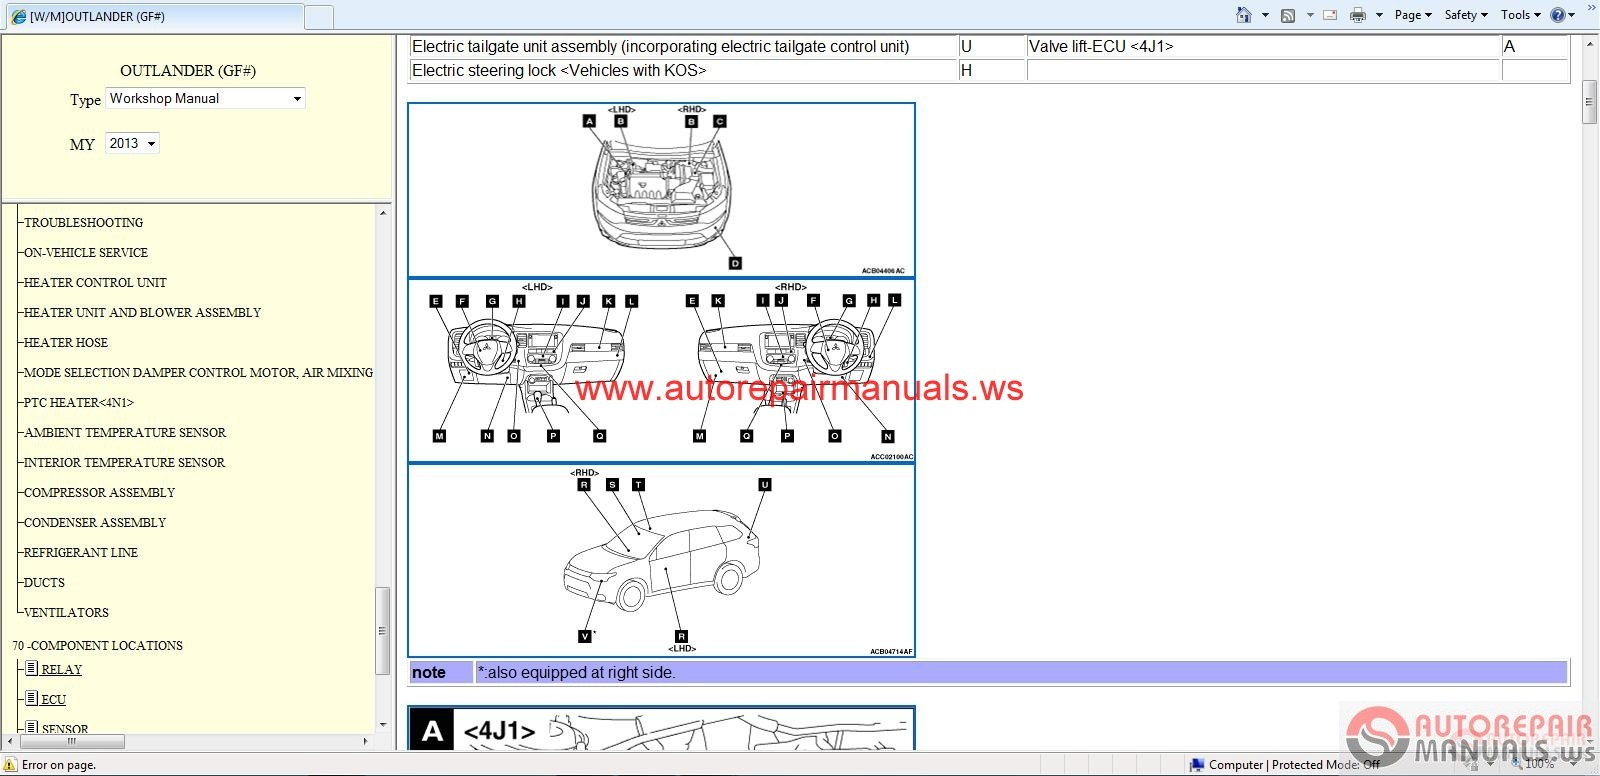 Mcb Web besides Post likewise Delco Alt On Farmall M Tractor Resized moreover Toyotacamryewd Toc together with Hqdefault. on electrical wiring diagrams